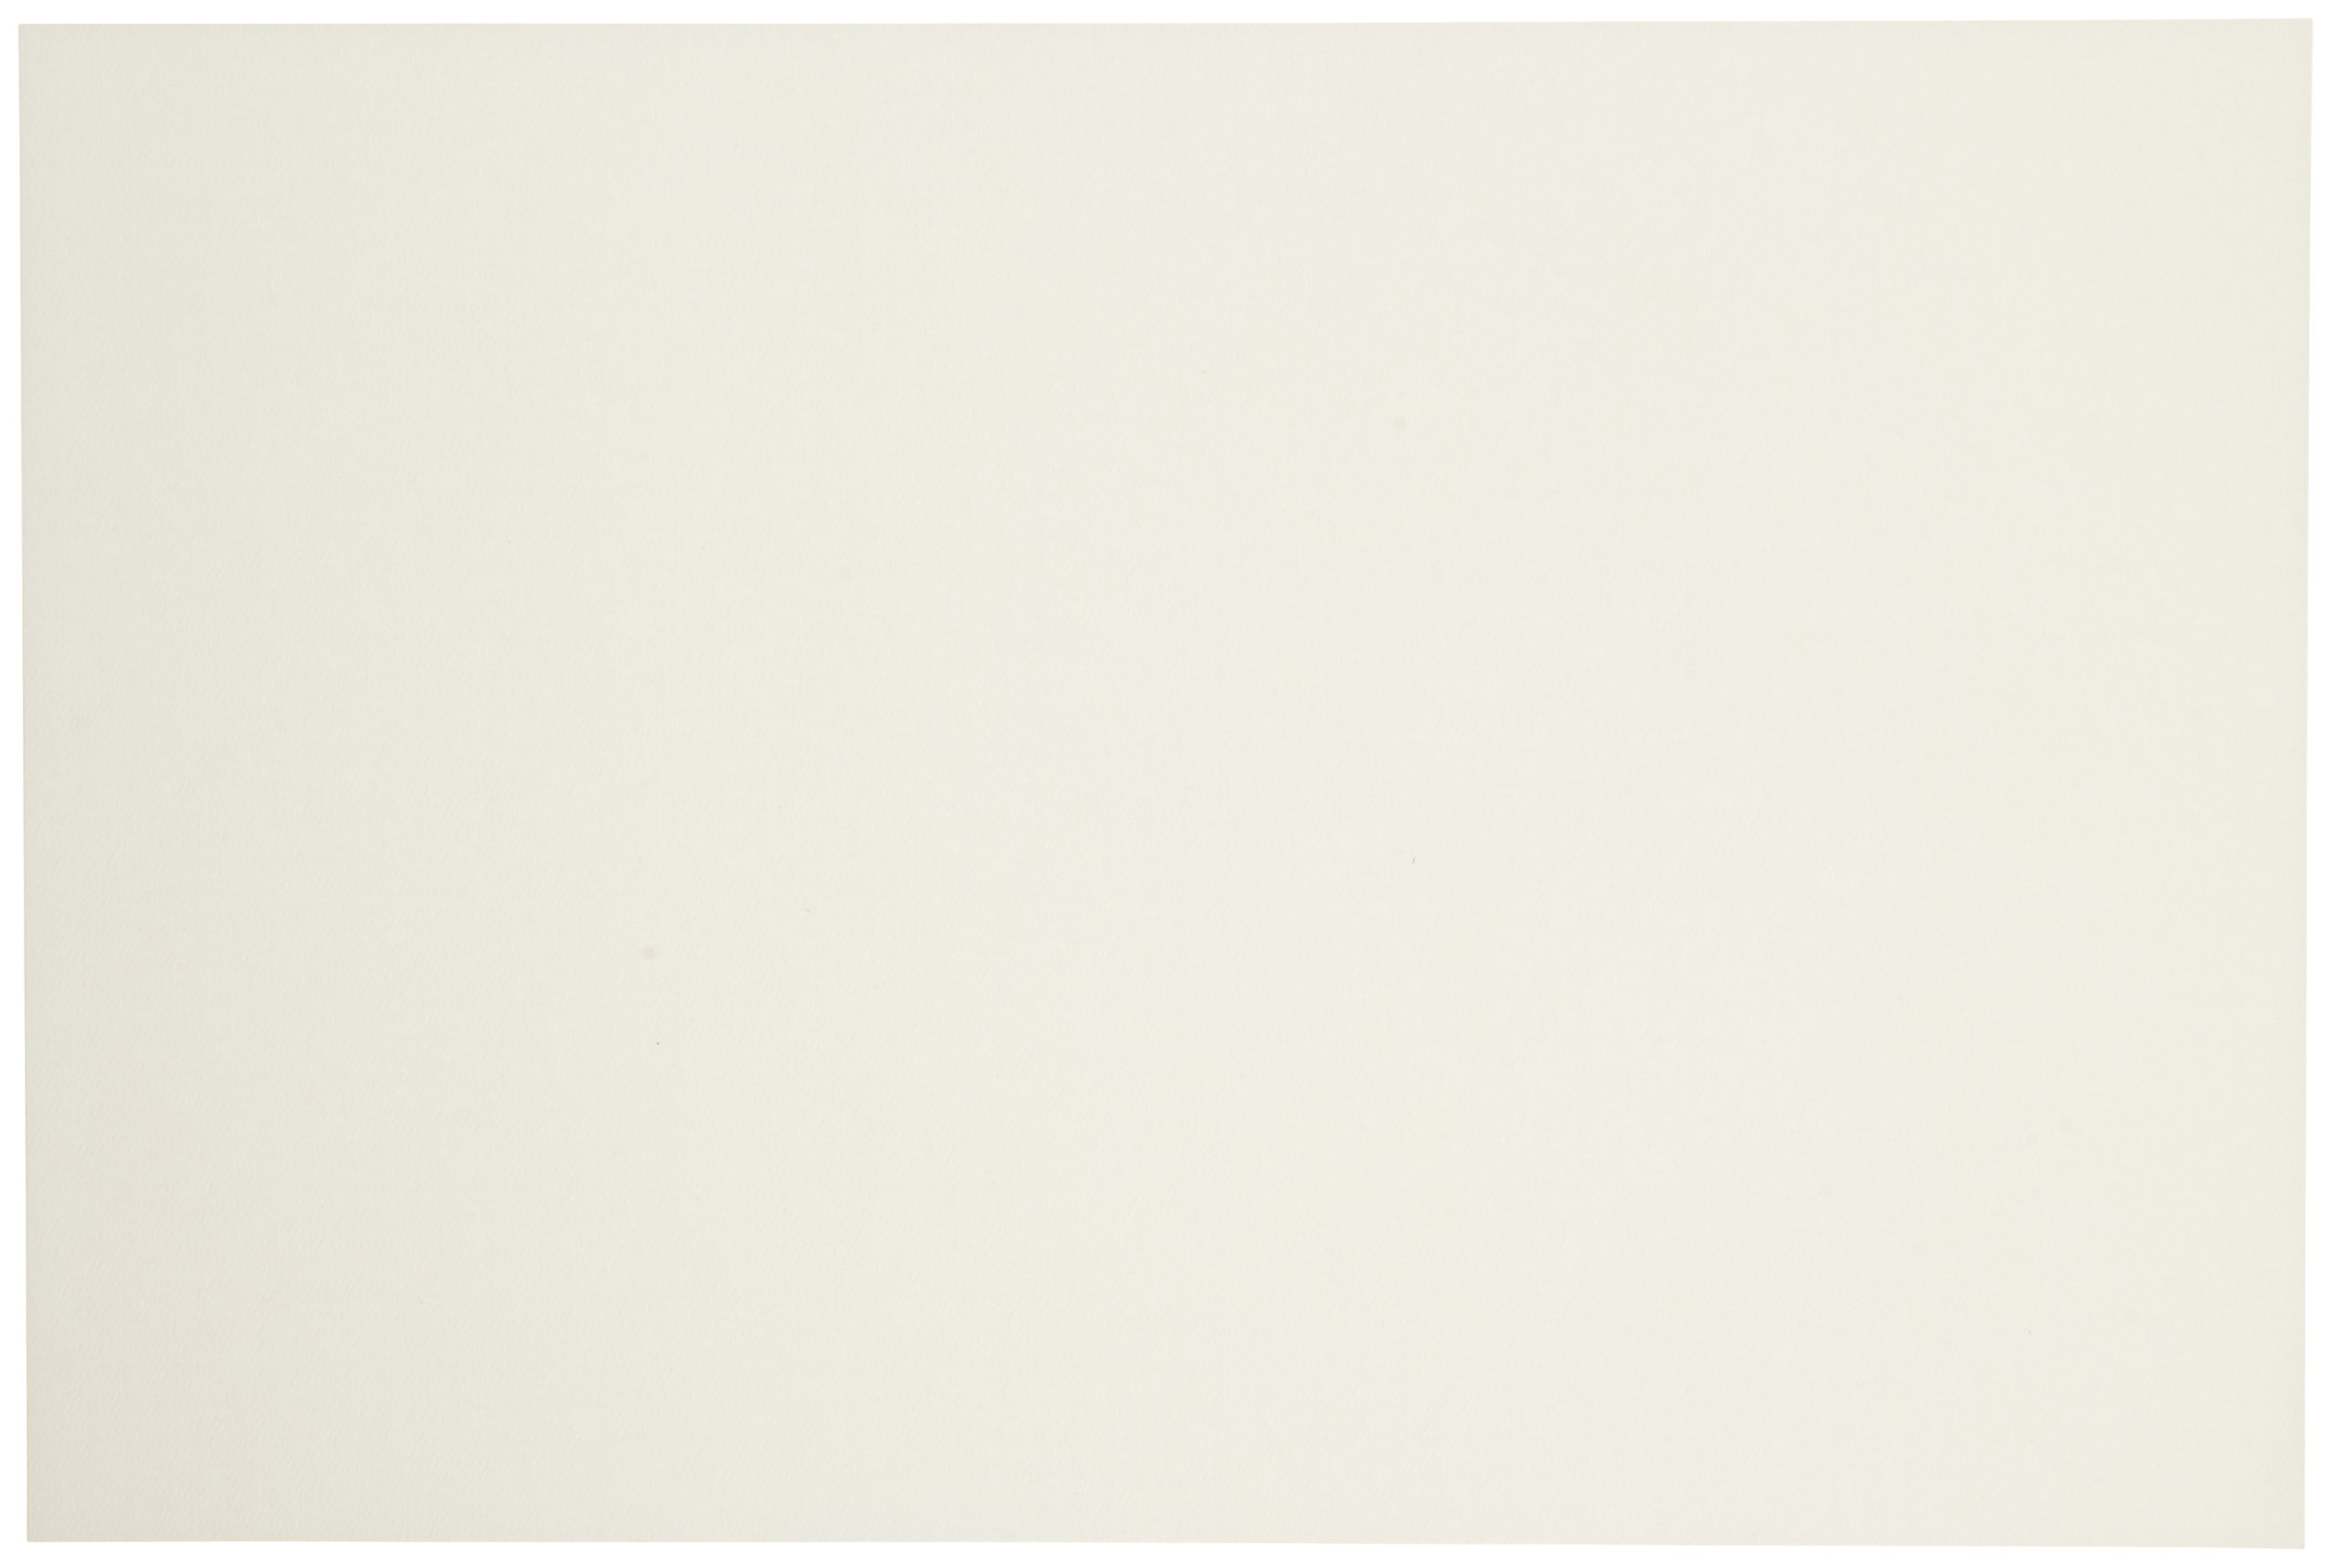 Sax Watercolor Beginner Paper, 90 lbs, 12 x 18 Inches, Natural White, Pack of 500 by Sax